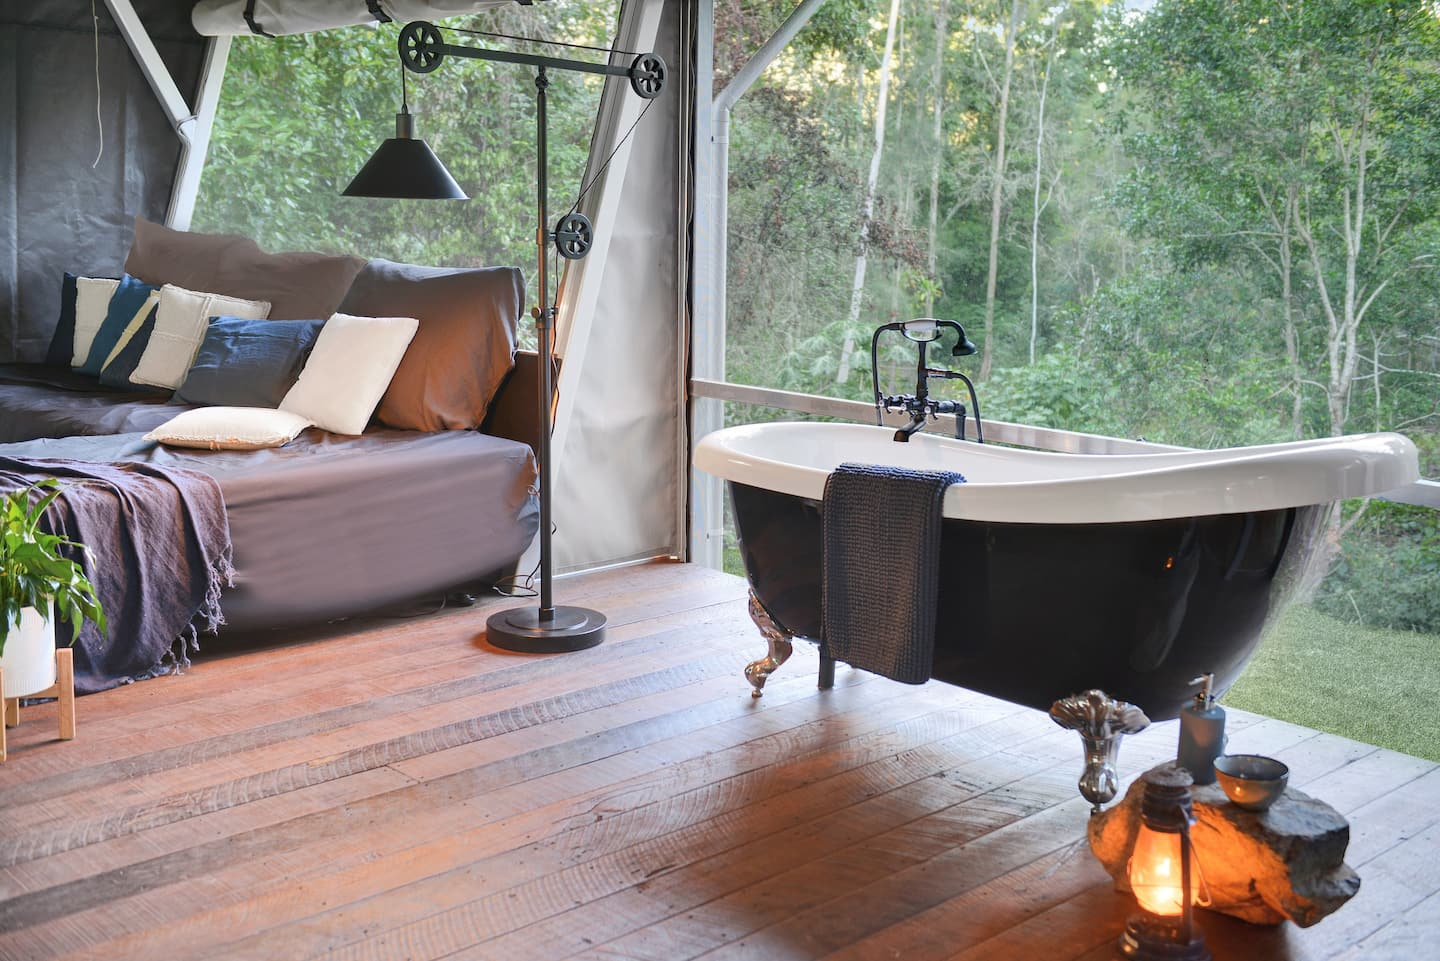 inside a tent with a bath and bed